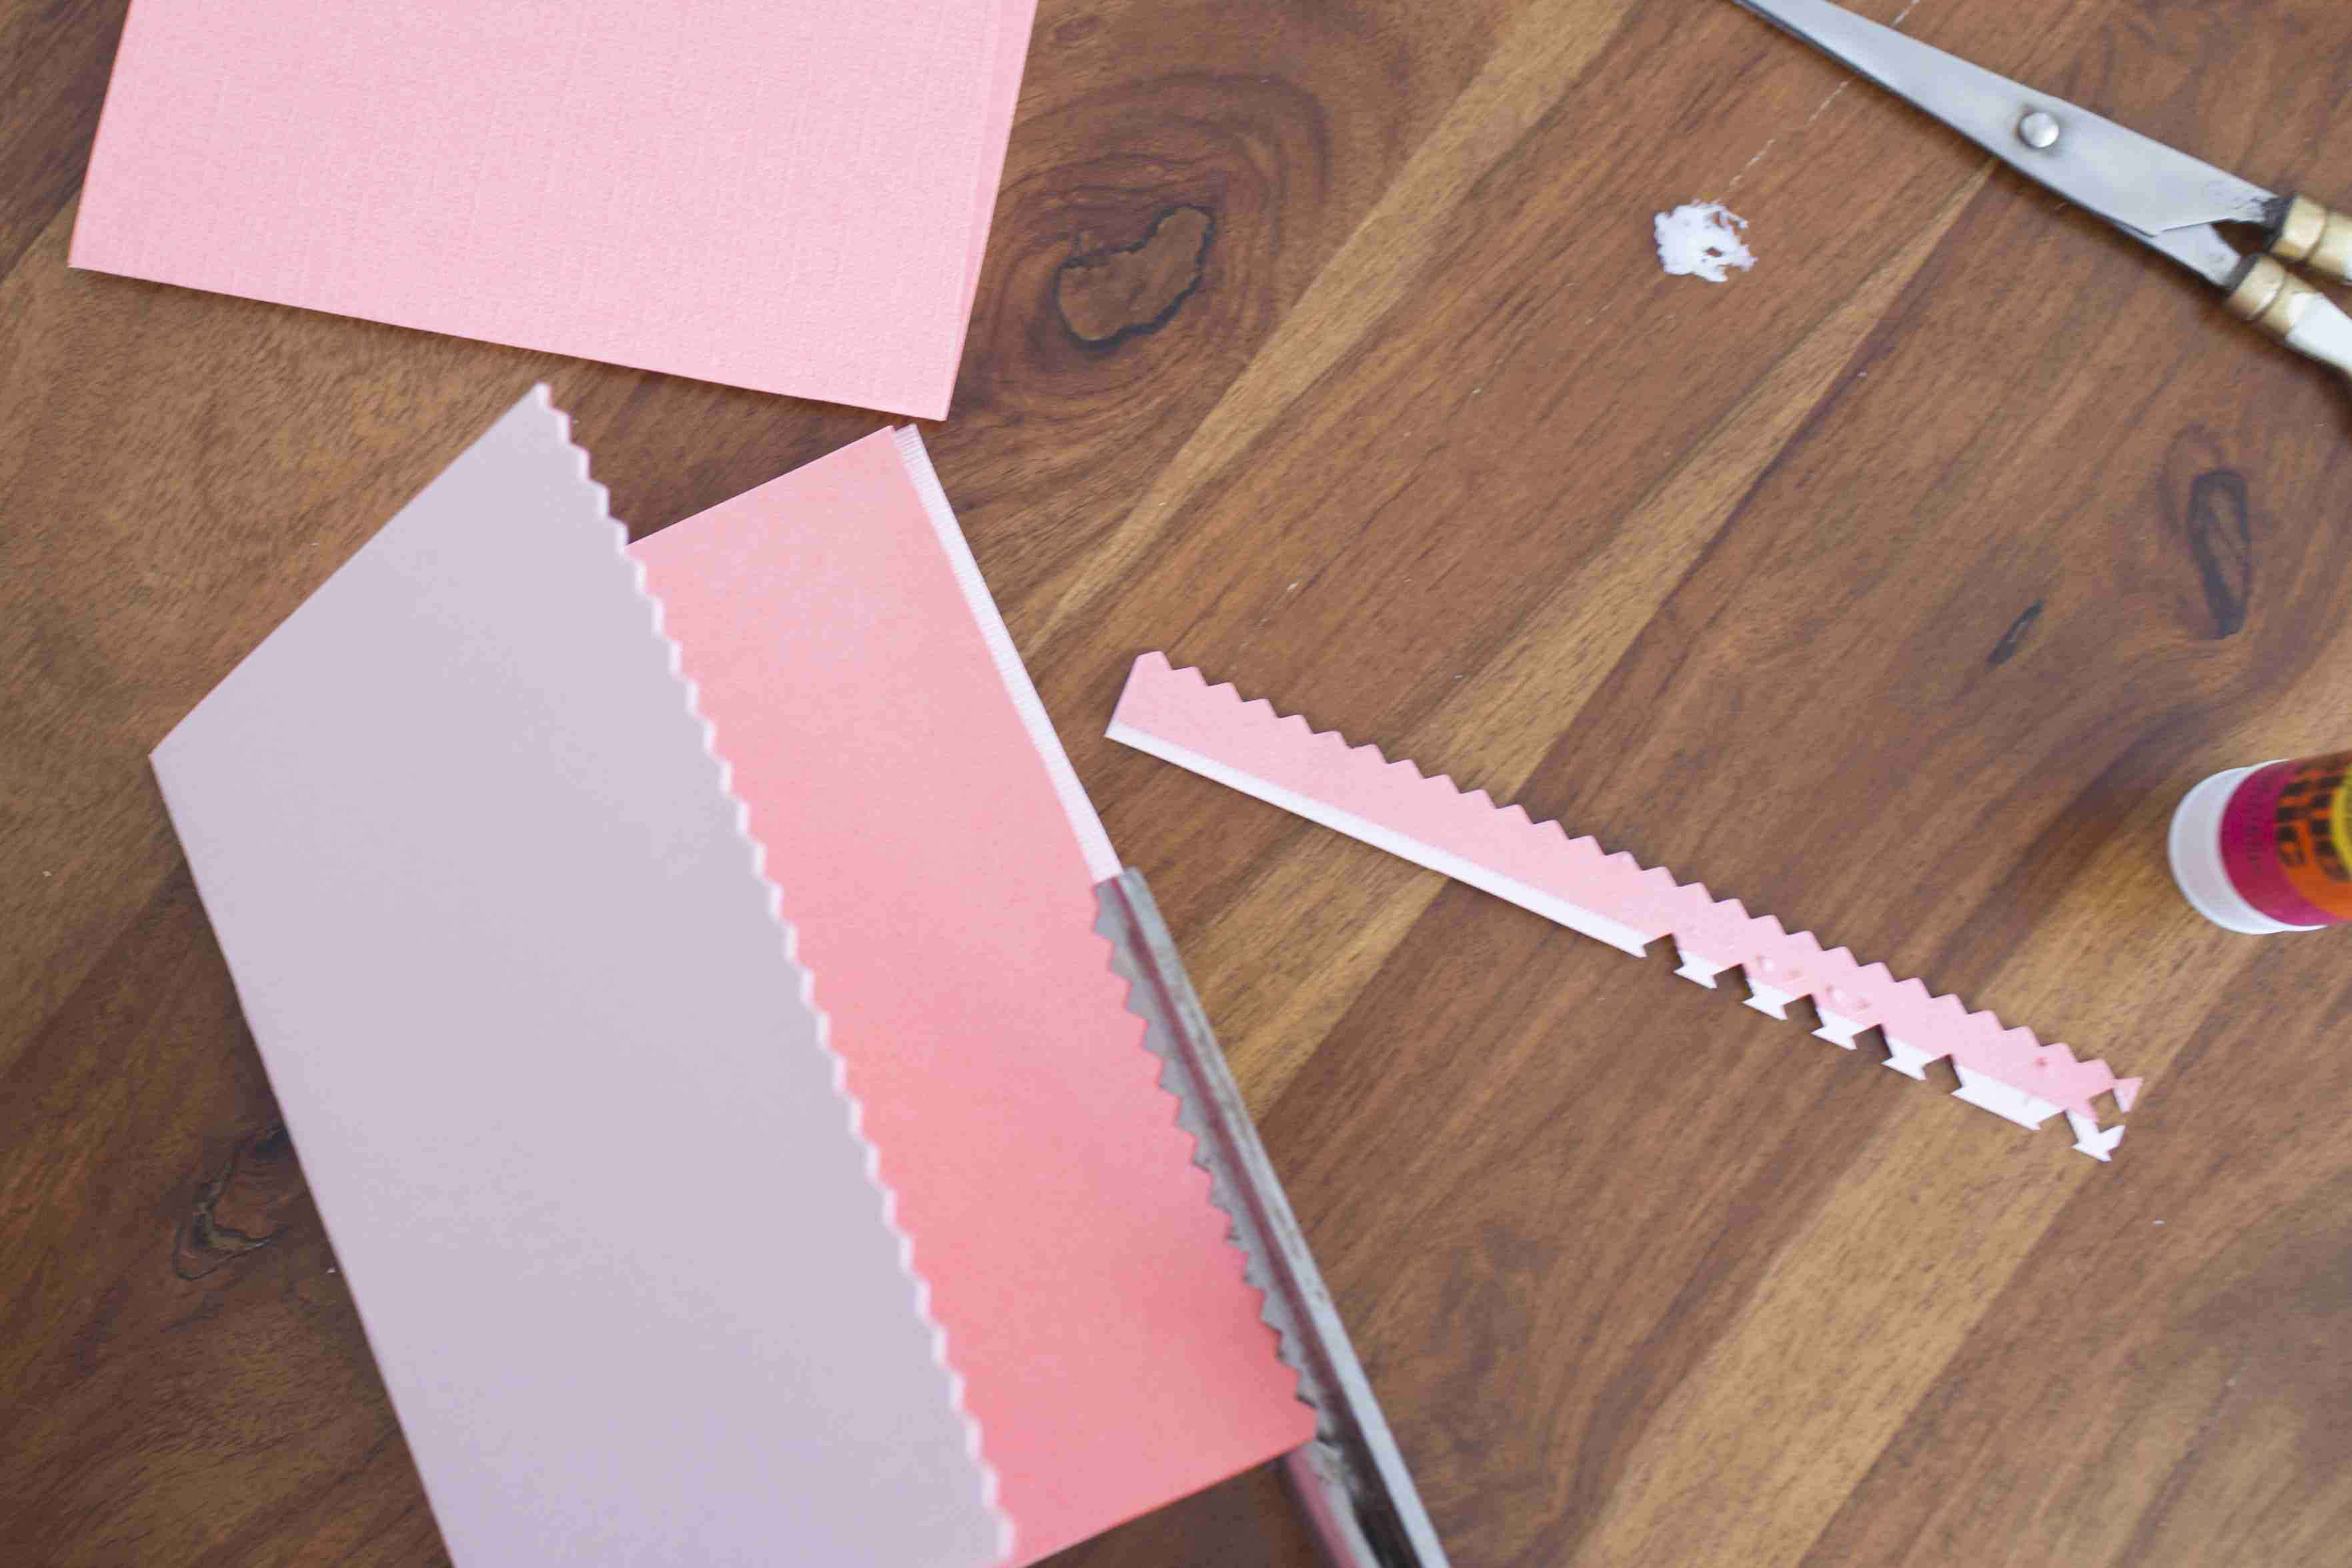 Cardstock being cut with pinking shears